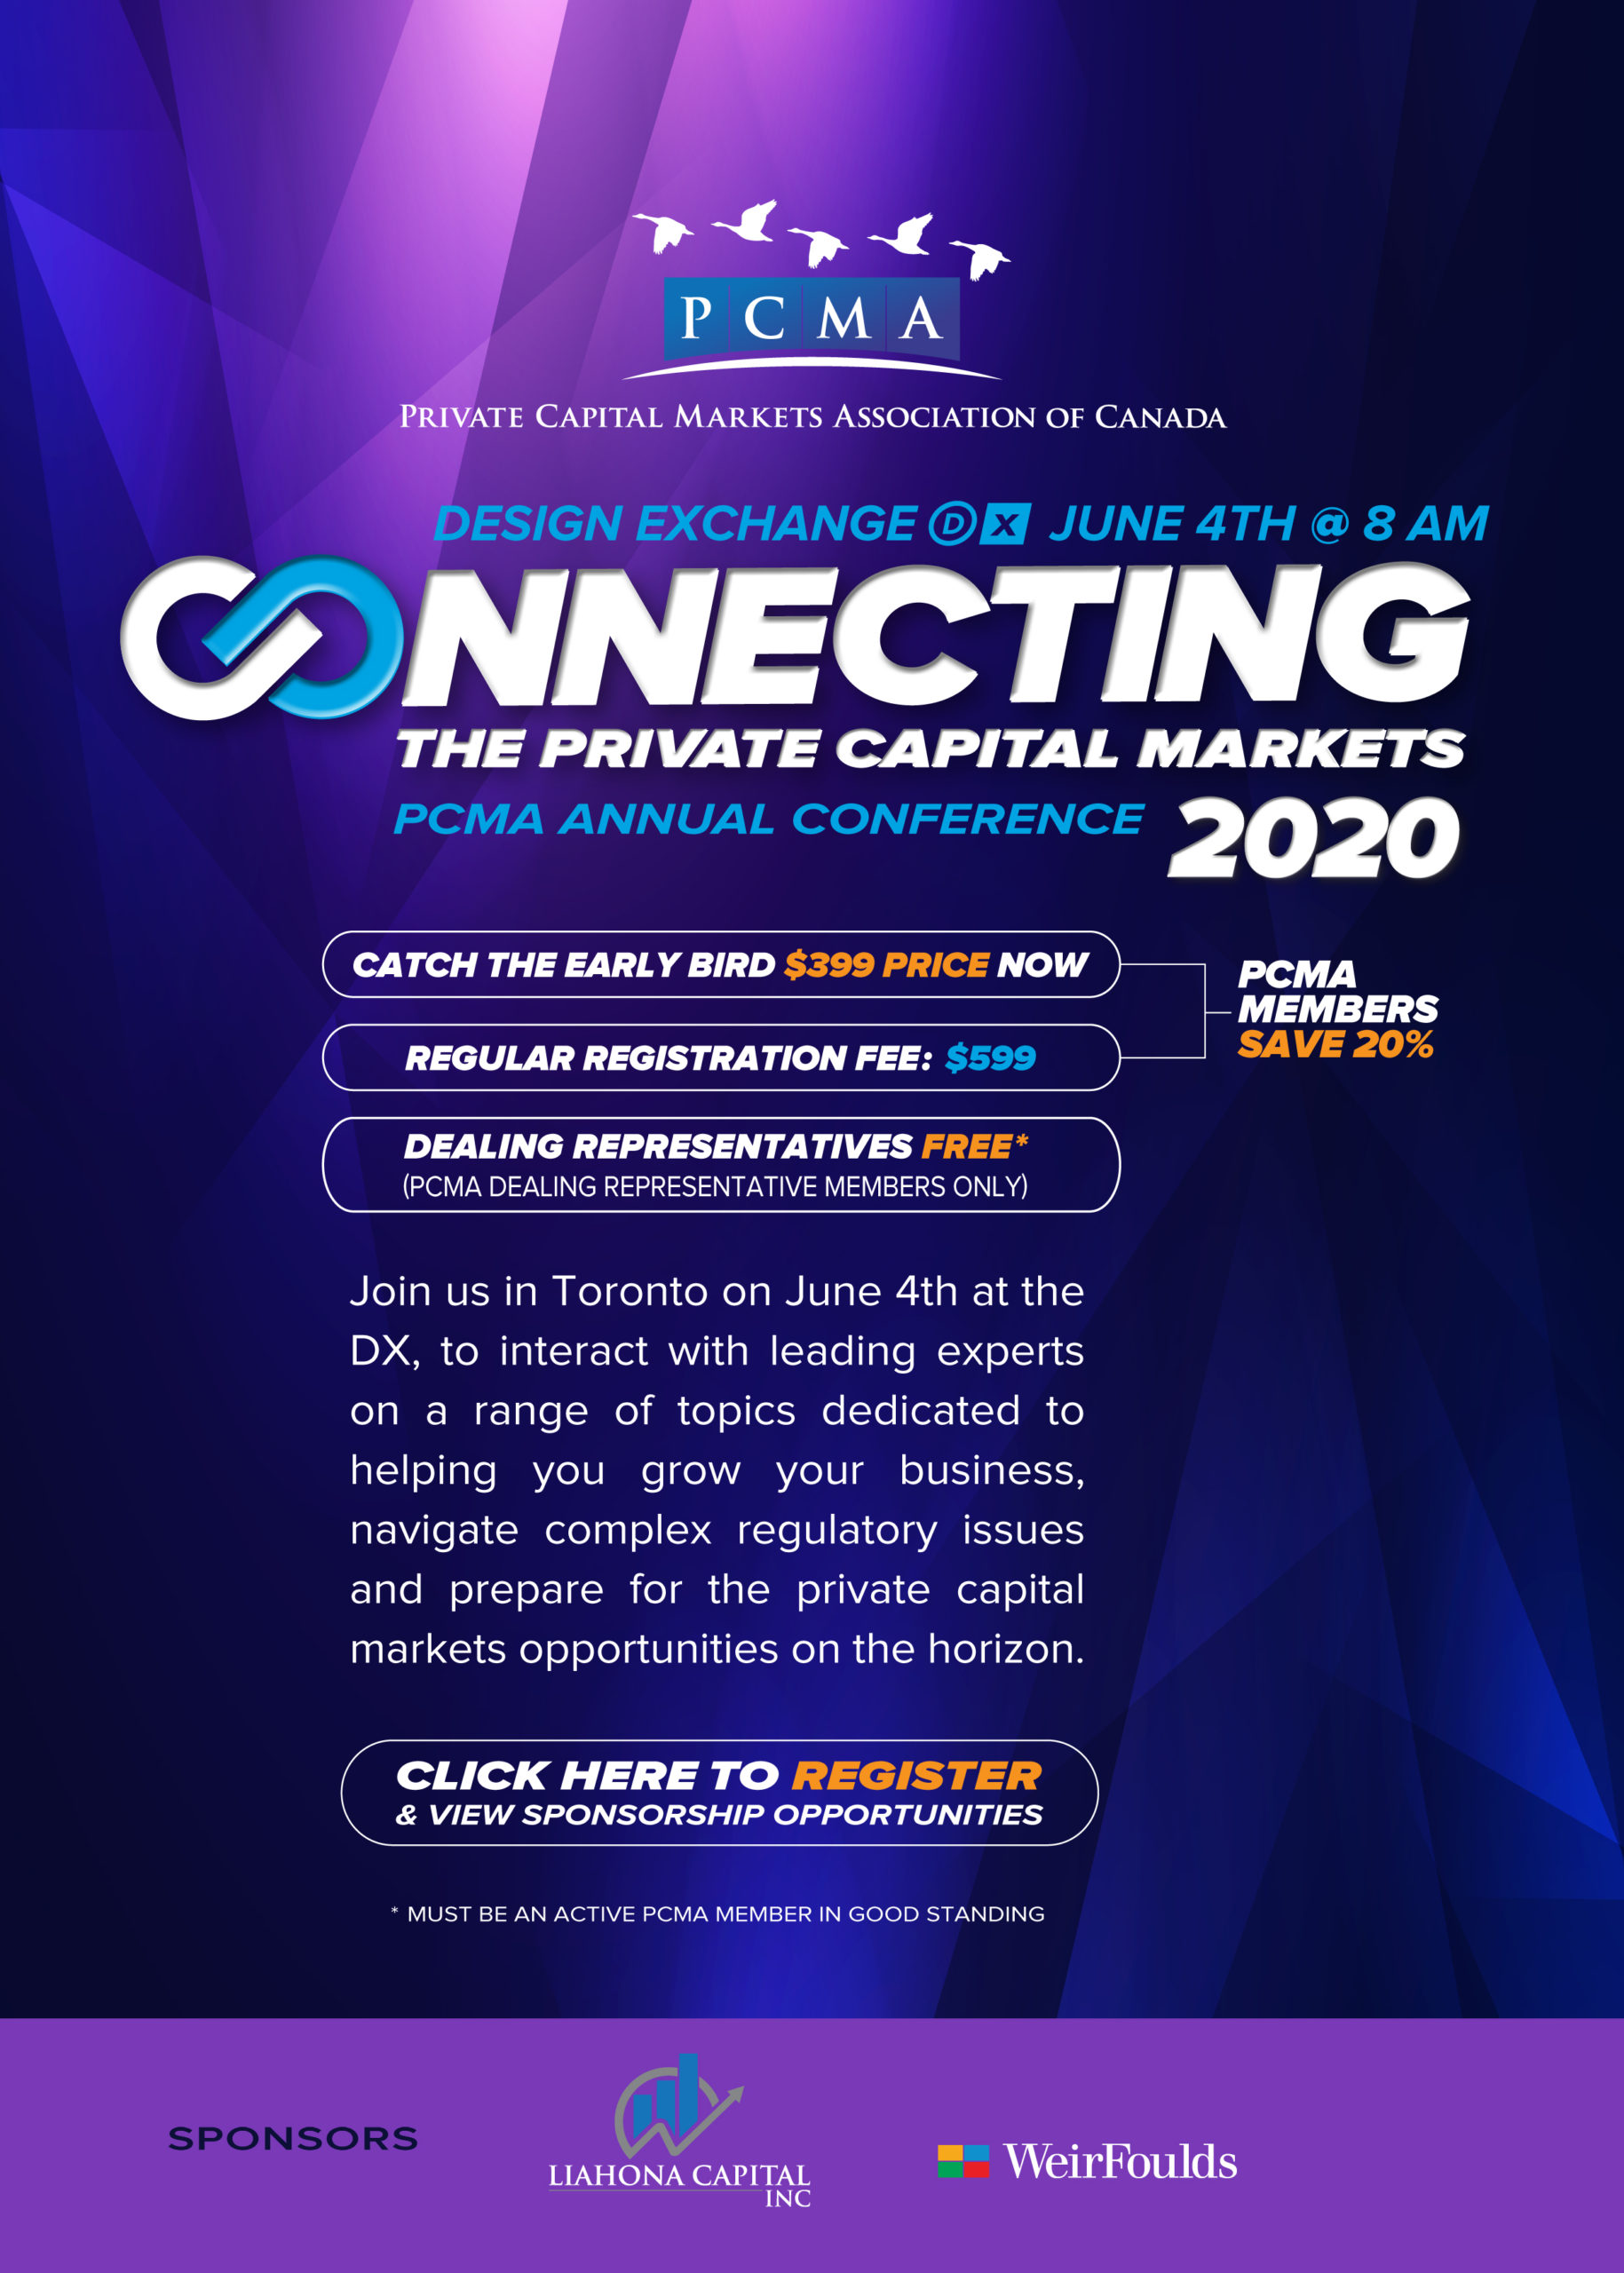 PCMA 2020 NATIONAL CONFERENCE